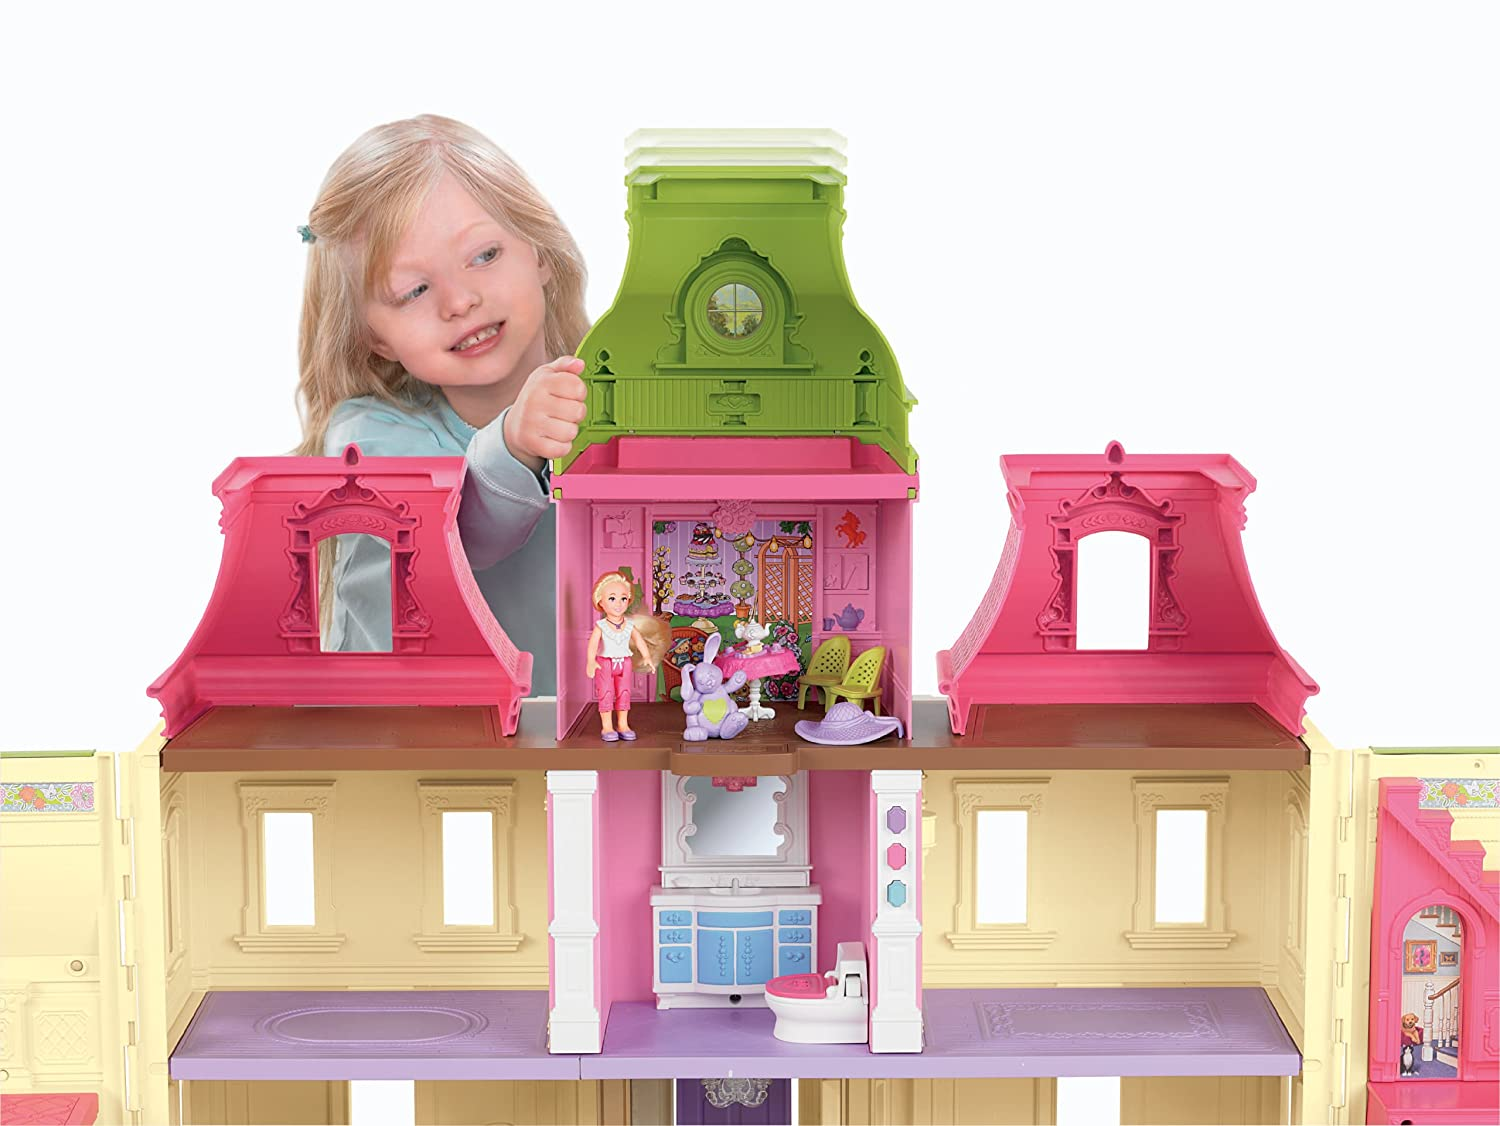 Fisher-Price Loving Family Dream Dollhouse with Caucasian Family $48.88